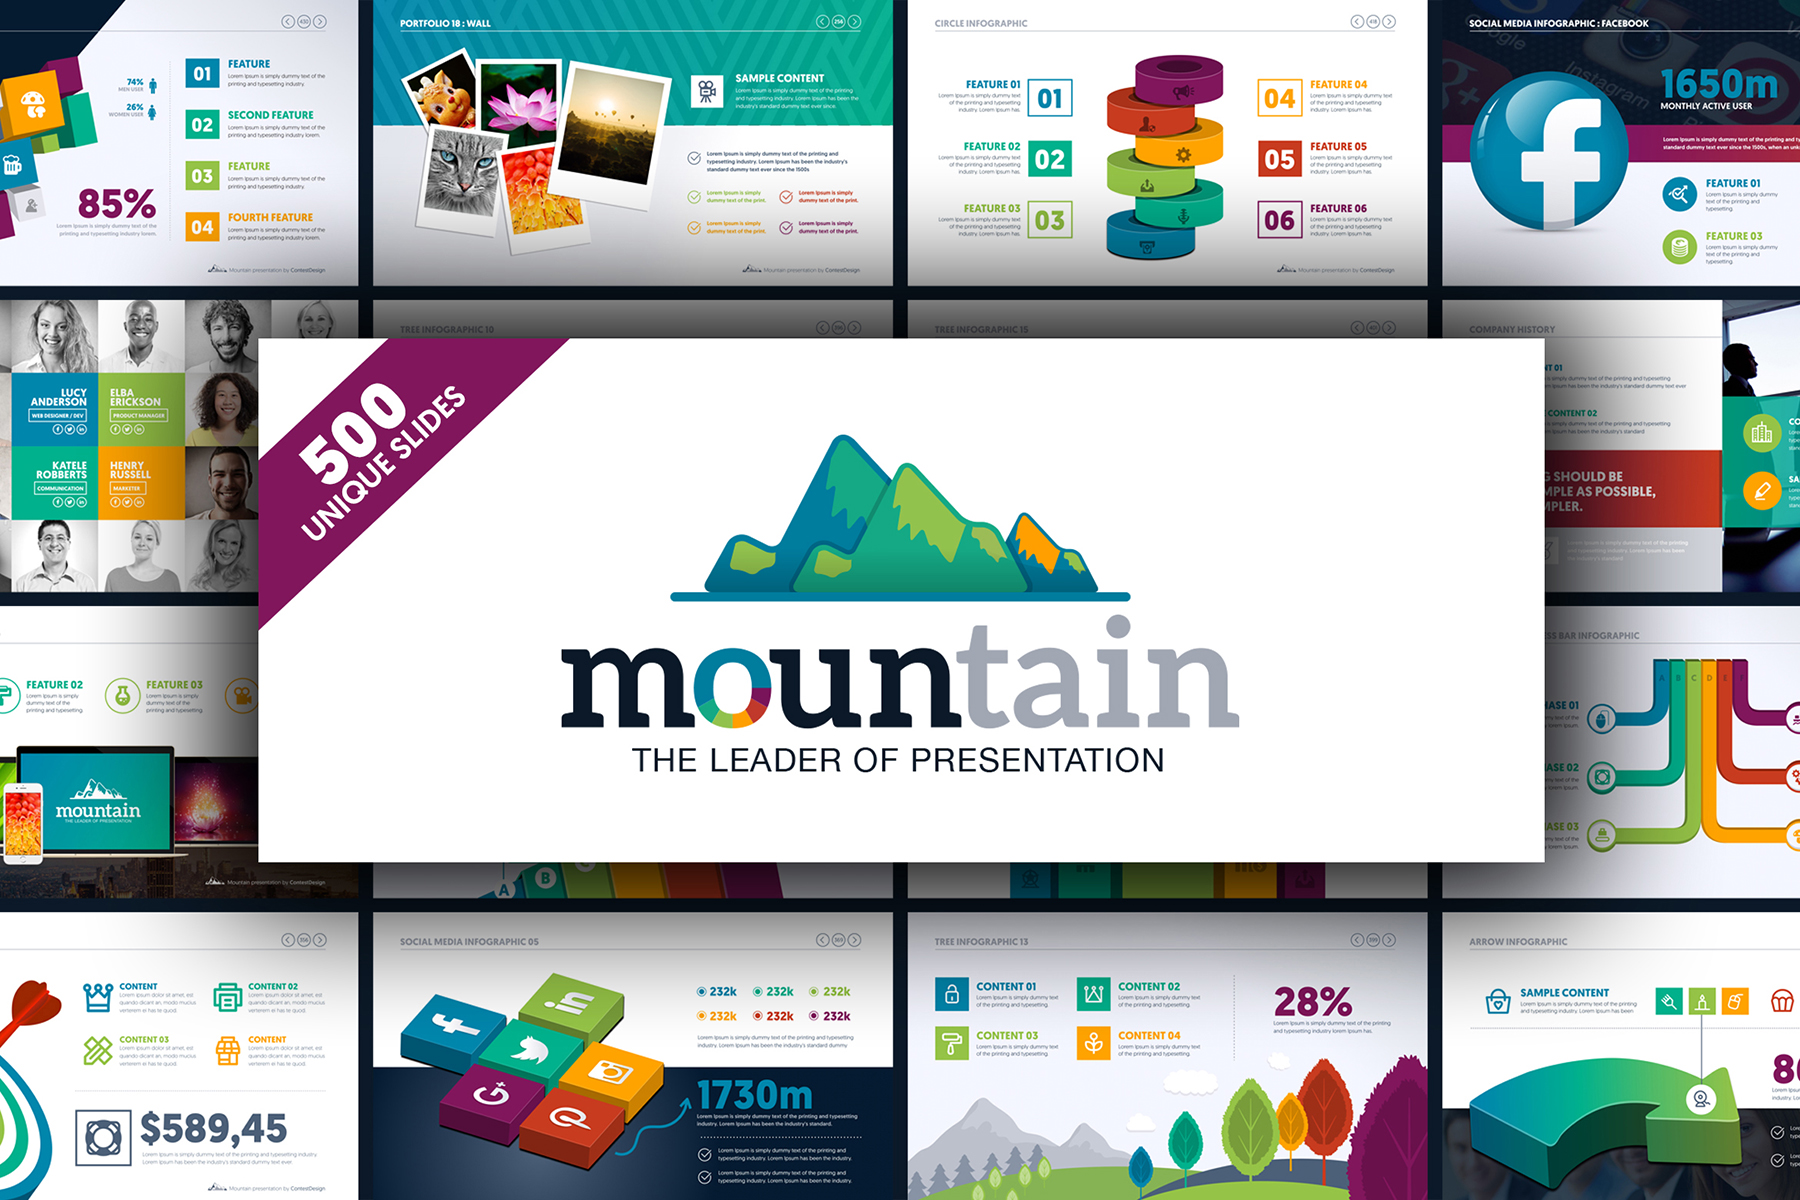 https://s3.tmimgcdn.com/templates/4083/scr/02_Mountain-The-leader-of-powerpoint-presentation-project-infographic-business-ppt-pptx-animated-powerpoint-presentation-design-template-free-download_Slider%20Images.jpg